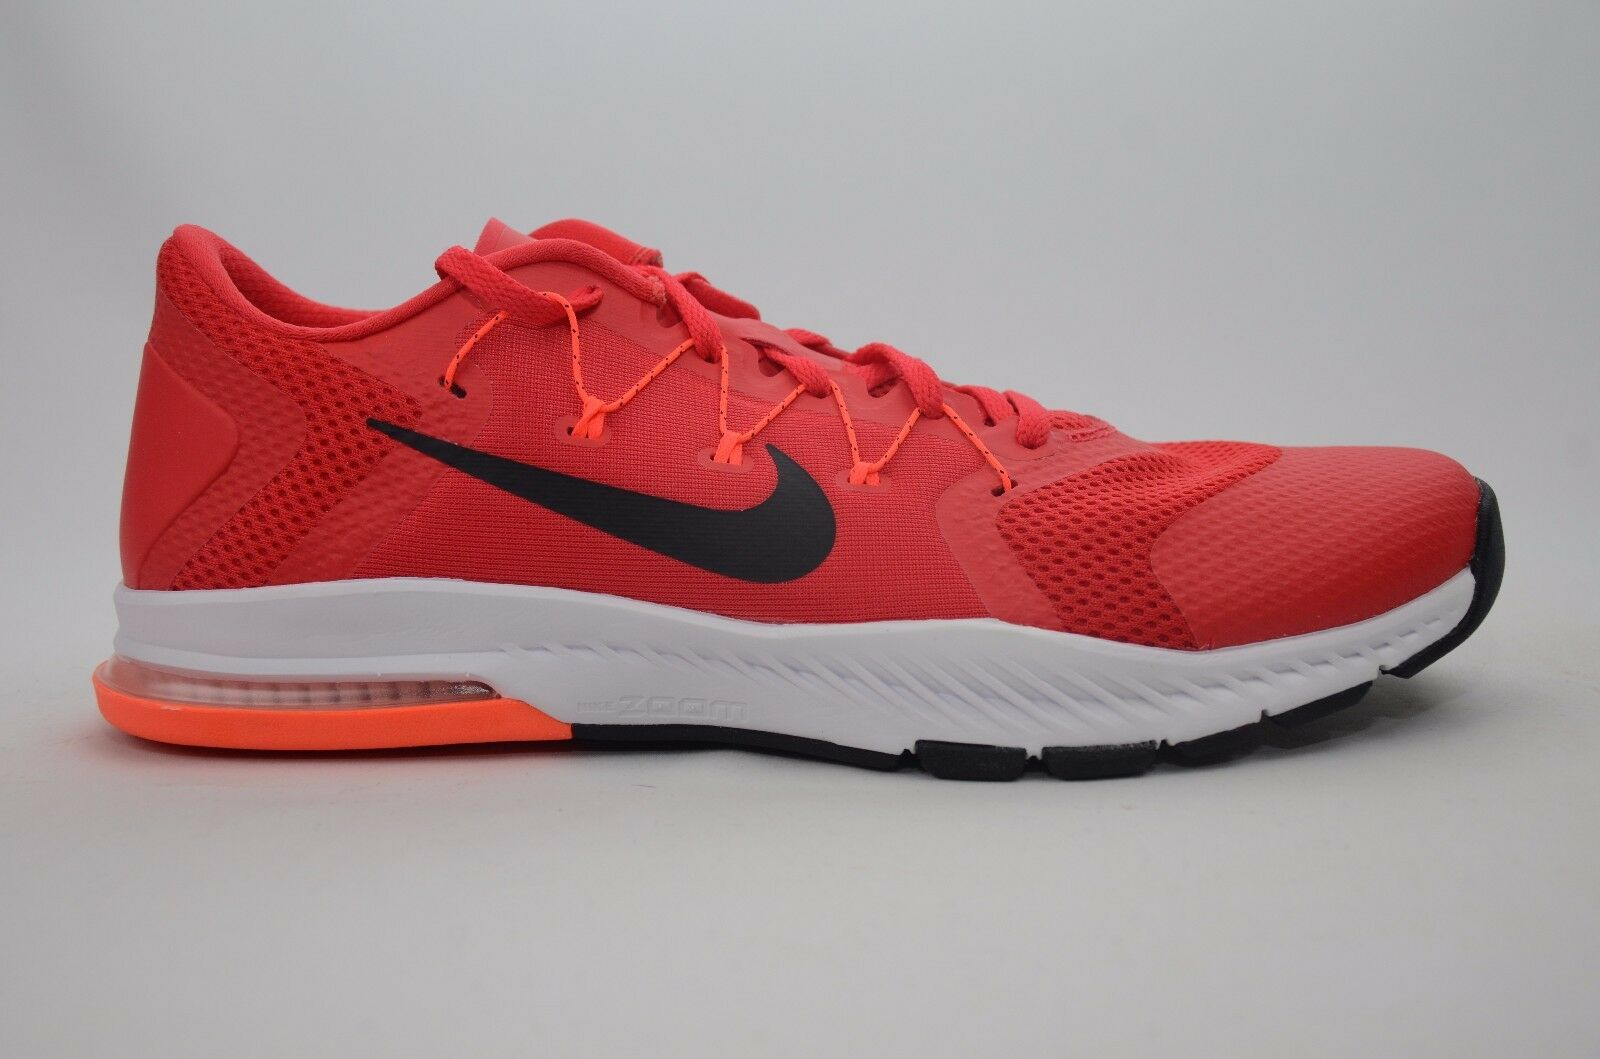 Nike Zoom Train Complete Red/Black Men's Comfortable